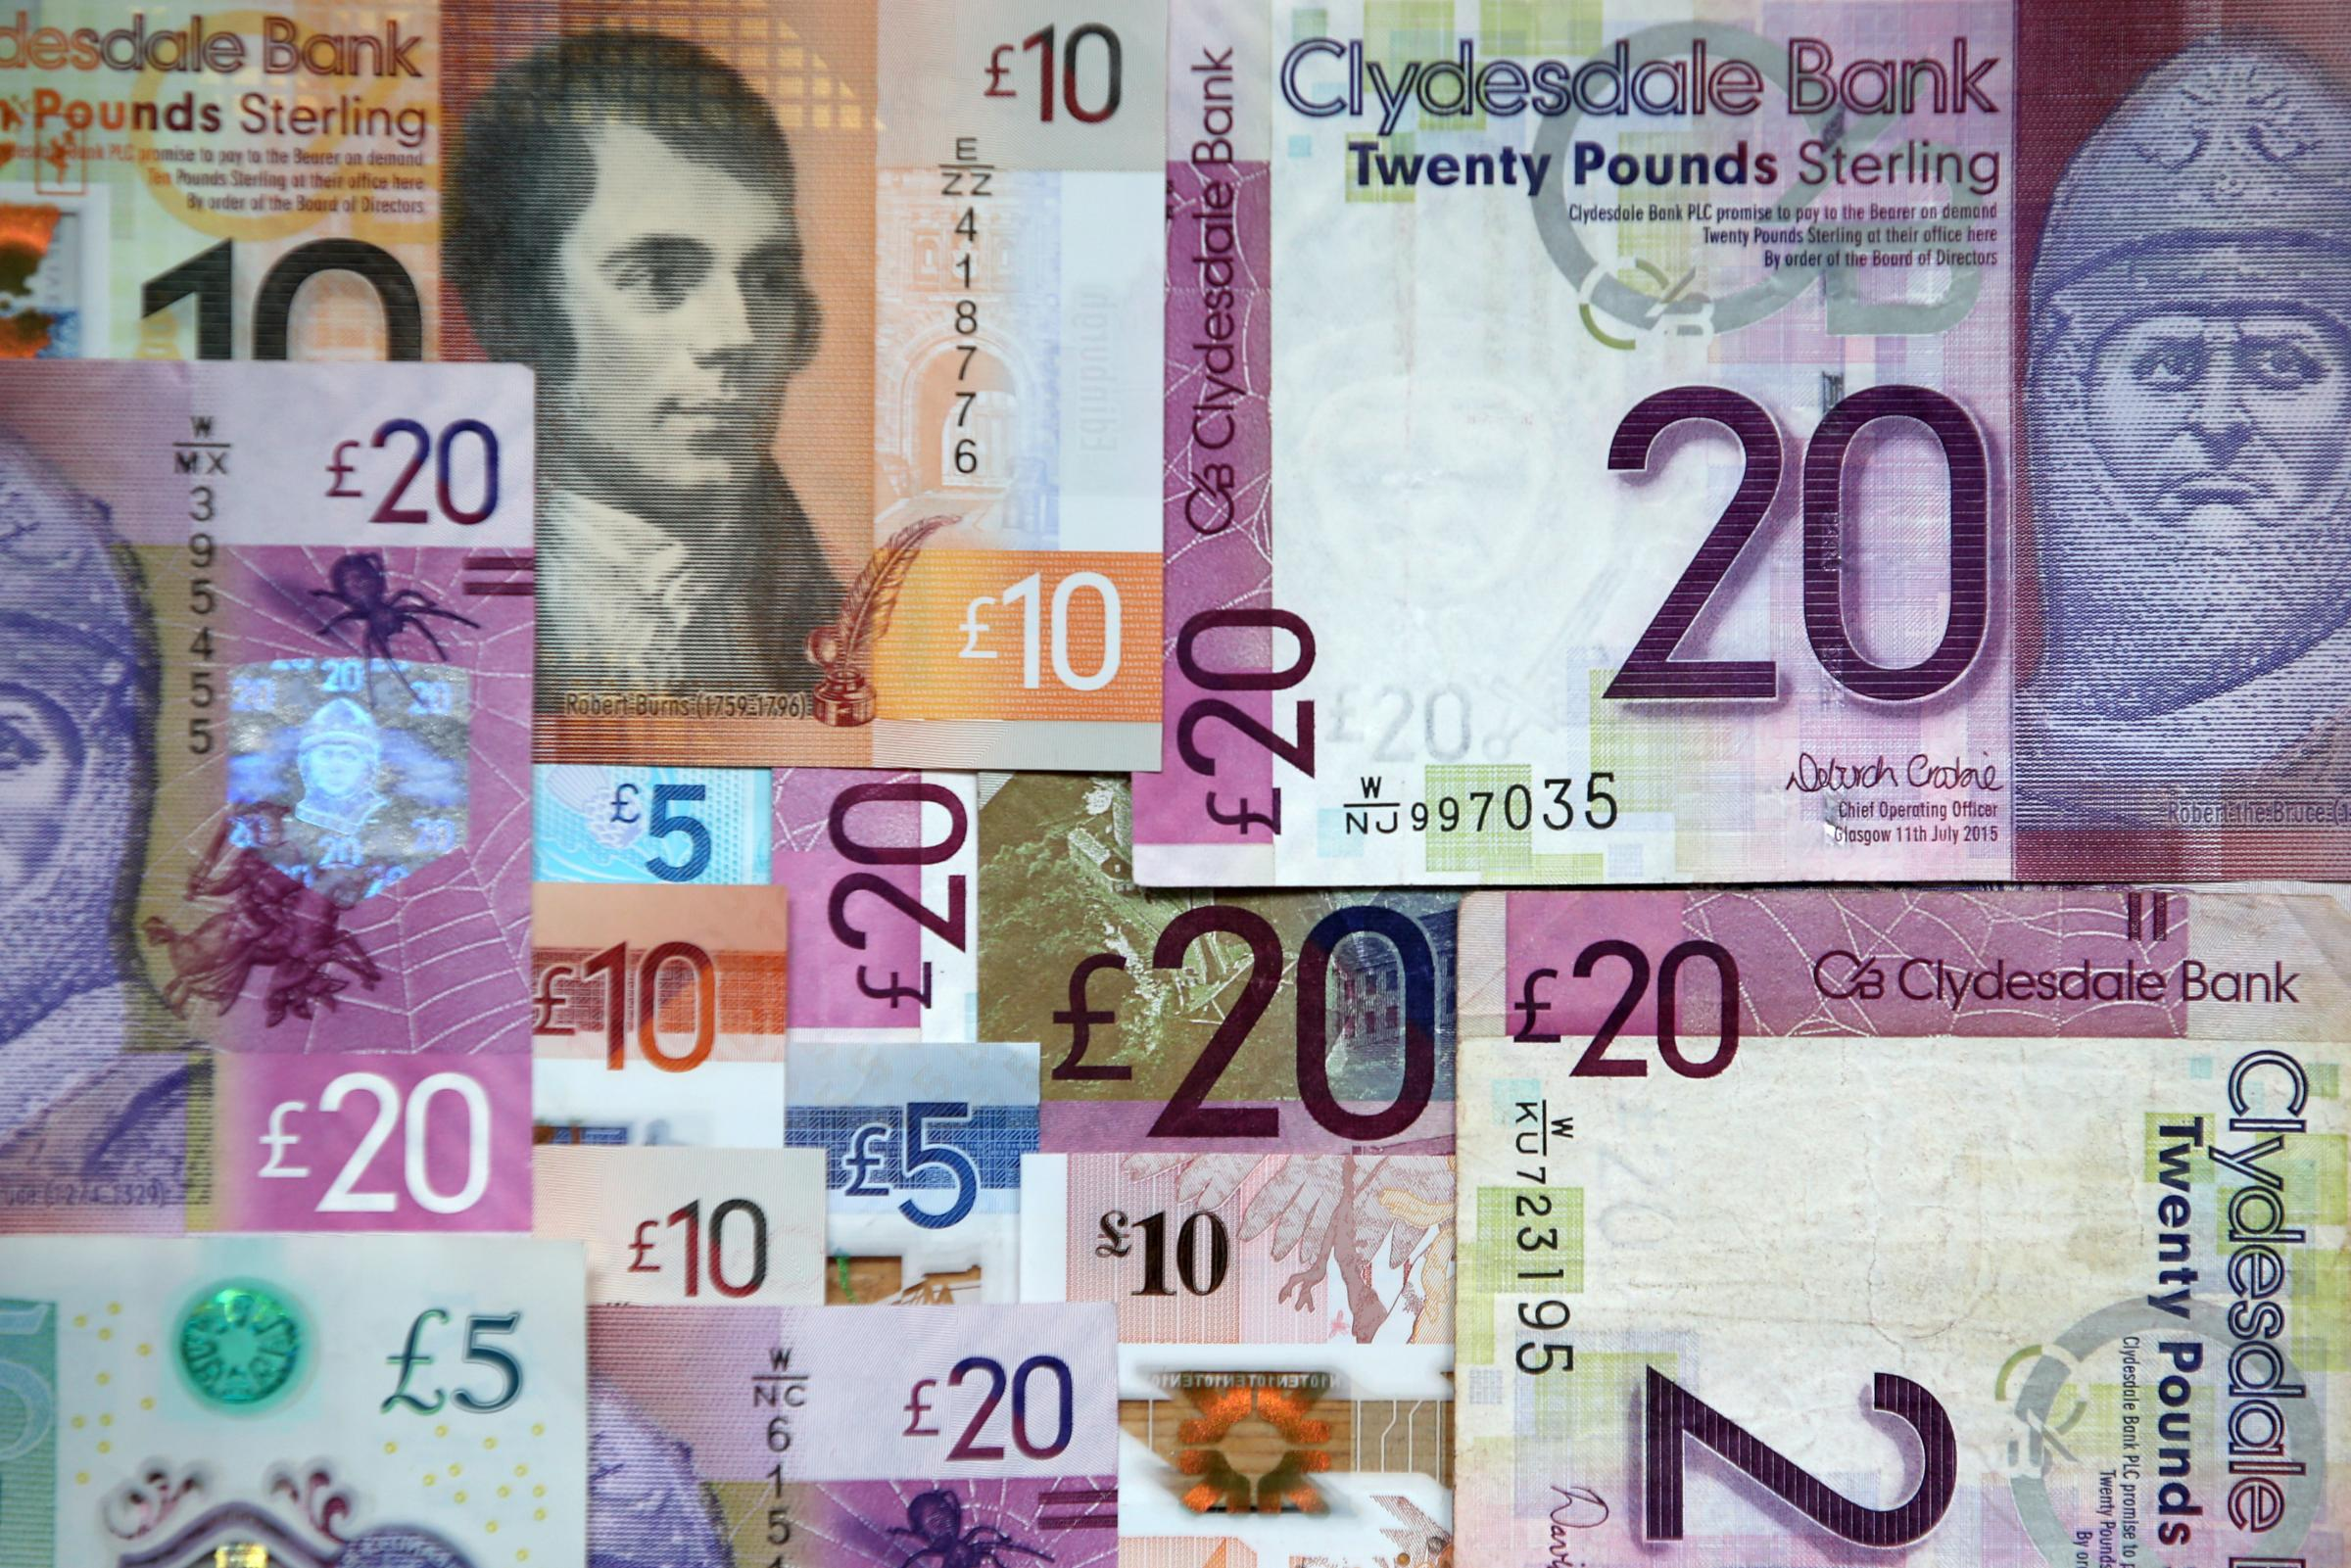 Third of people in England think Scots notes are fake, survey reveals